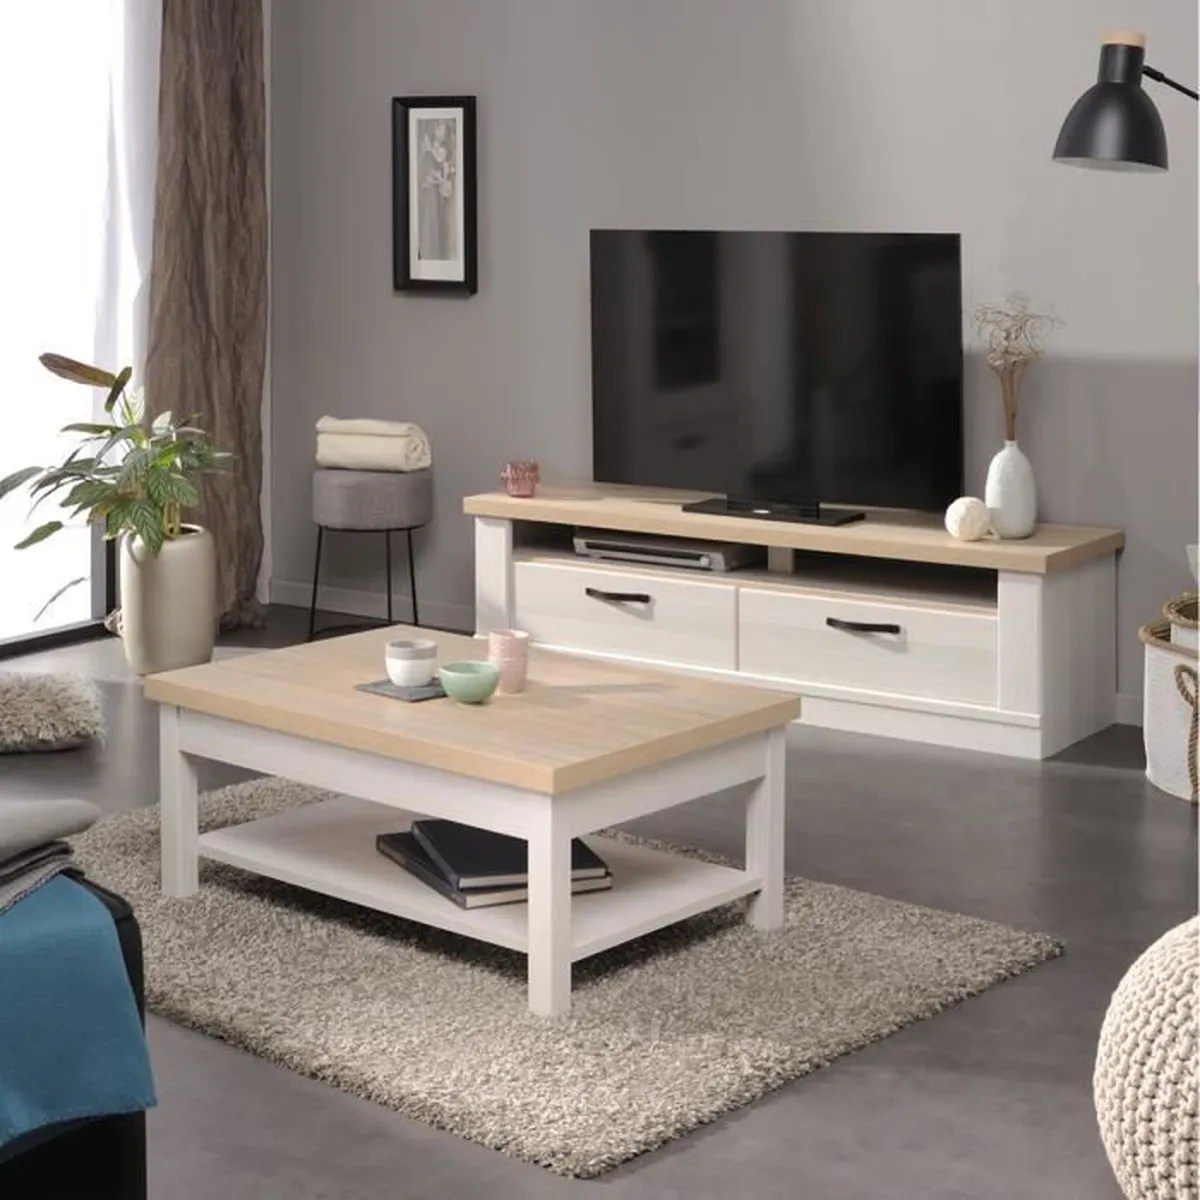 Meuble Tv Largeur 60 Cm Clarence Ensemble Table Basse Meuble Tv Achat Vente Table